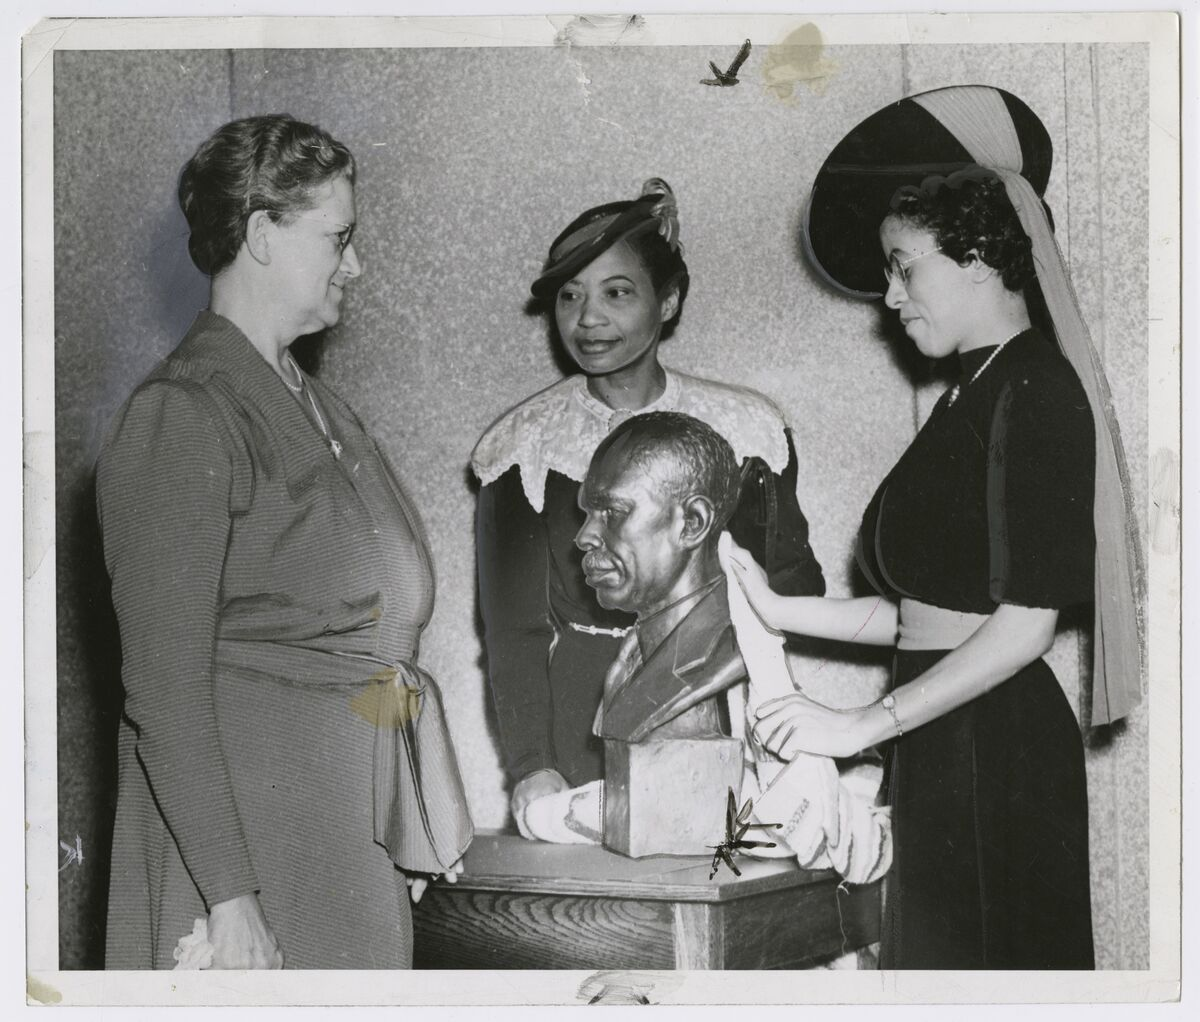 Augusta Savage with Ernestine Rose, Roberta Bosley Hubert, and her sculpture James Weldon Johnson, 1939. Courtesy of the Schomburg Center for Research in Black Culture, NYPL.